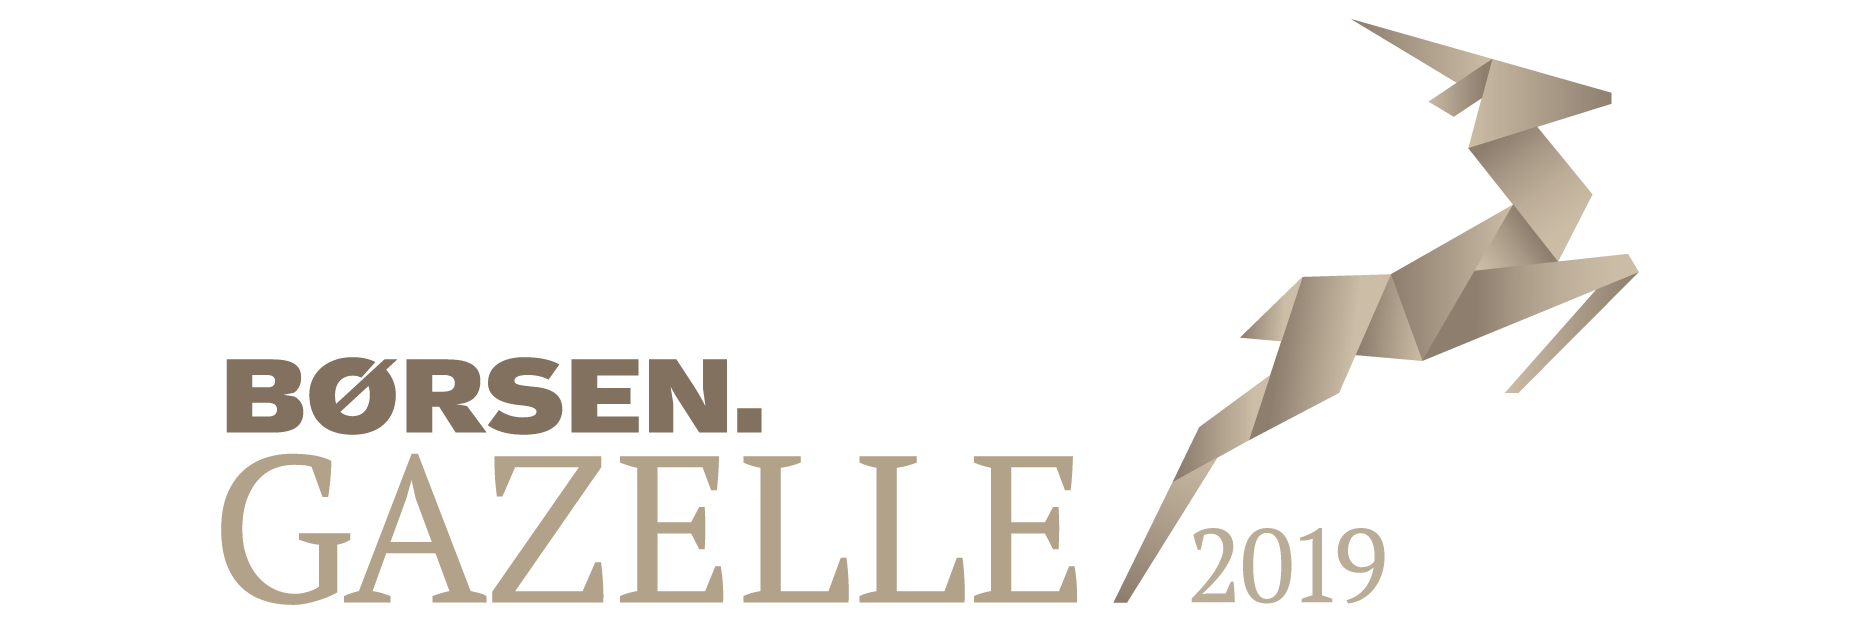 Ekspertvalg_Listed_Borsen_Gazelle_2019